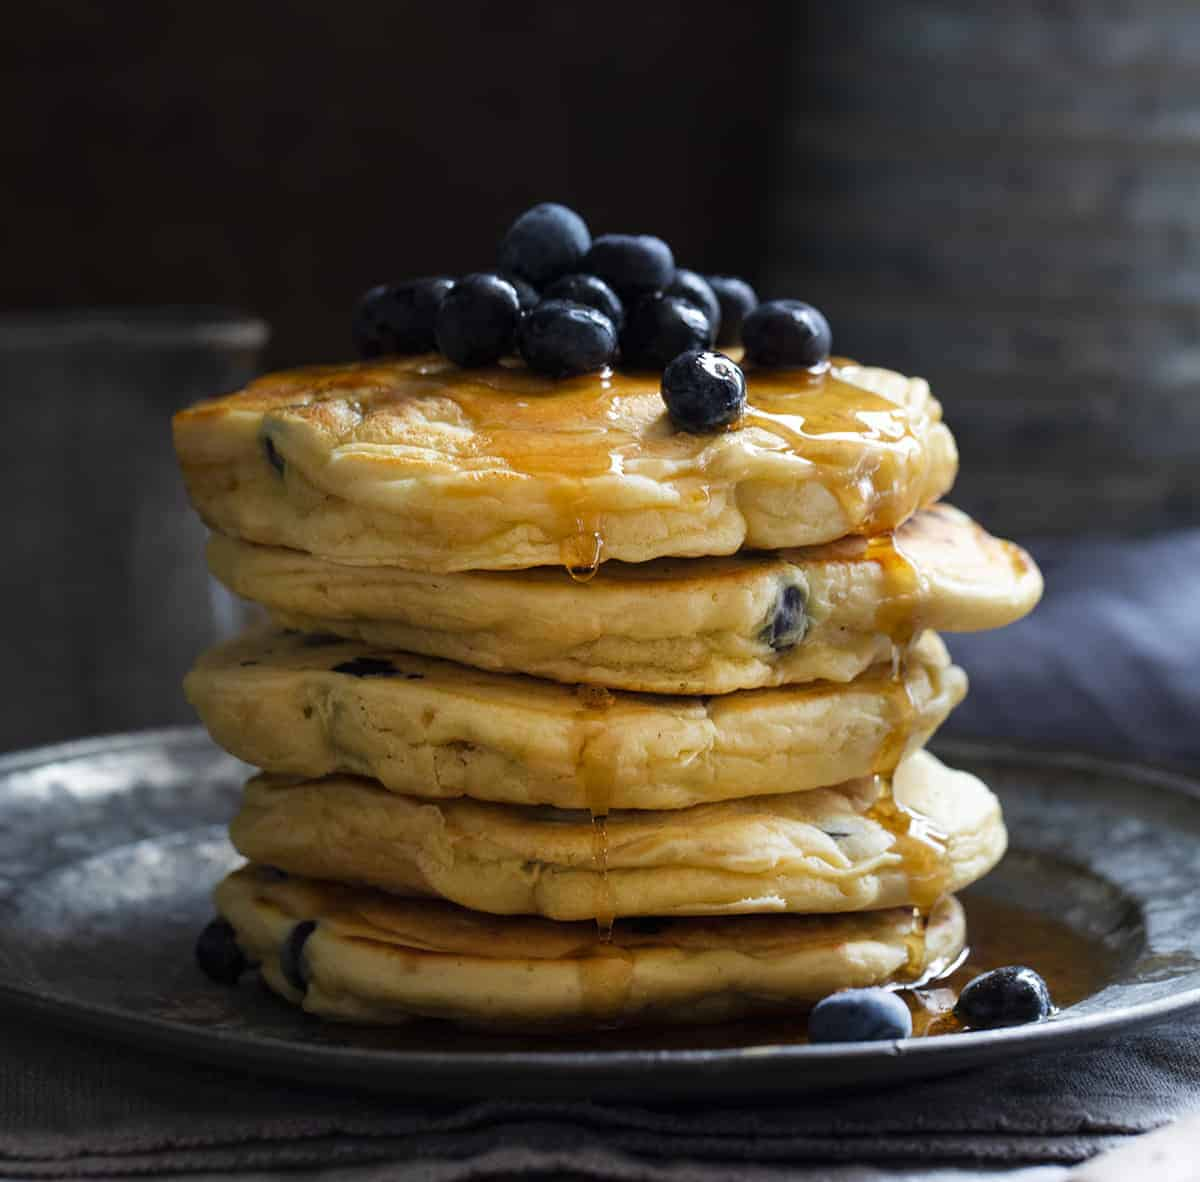 Blueberry Sourdough Pancakes Stacked on Plate with Blueberries